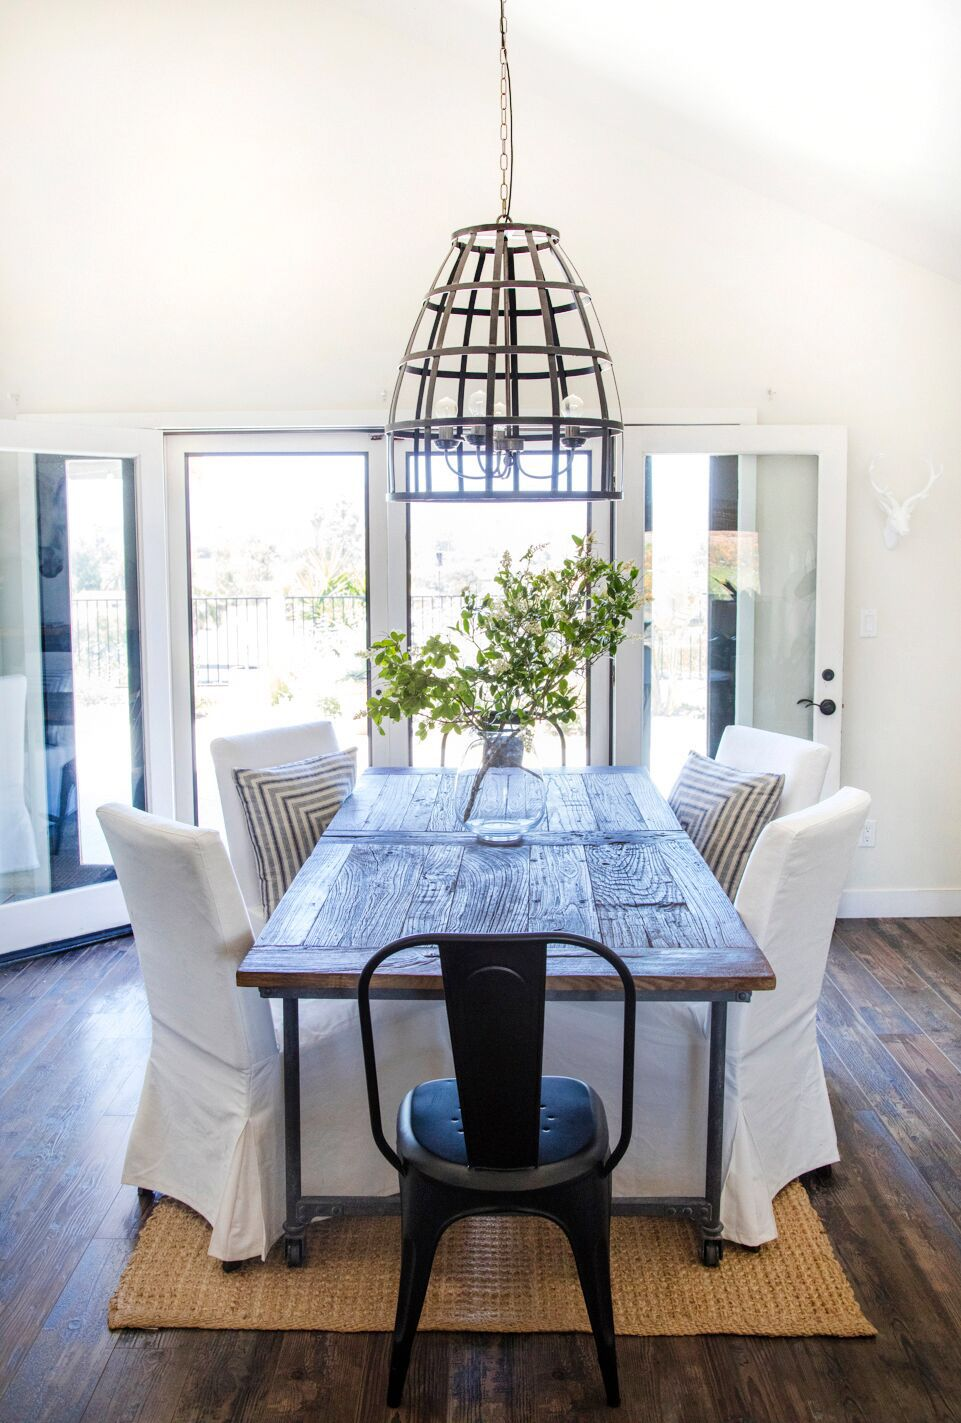 Dining Room Restoration Hardware Table With IKEA Chairs And Bird Cage Pendant Farmhouse